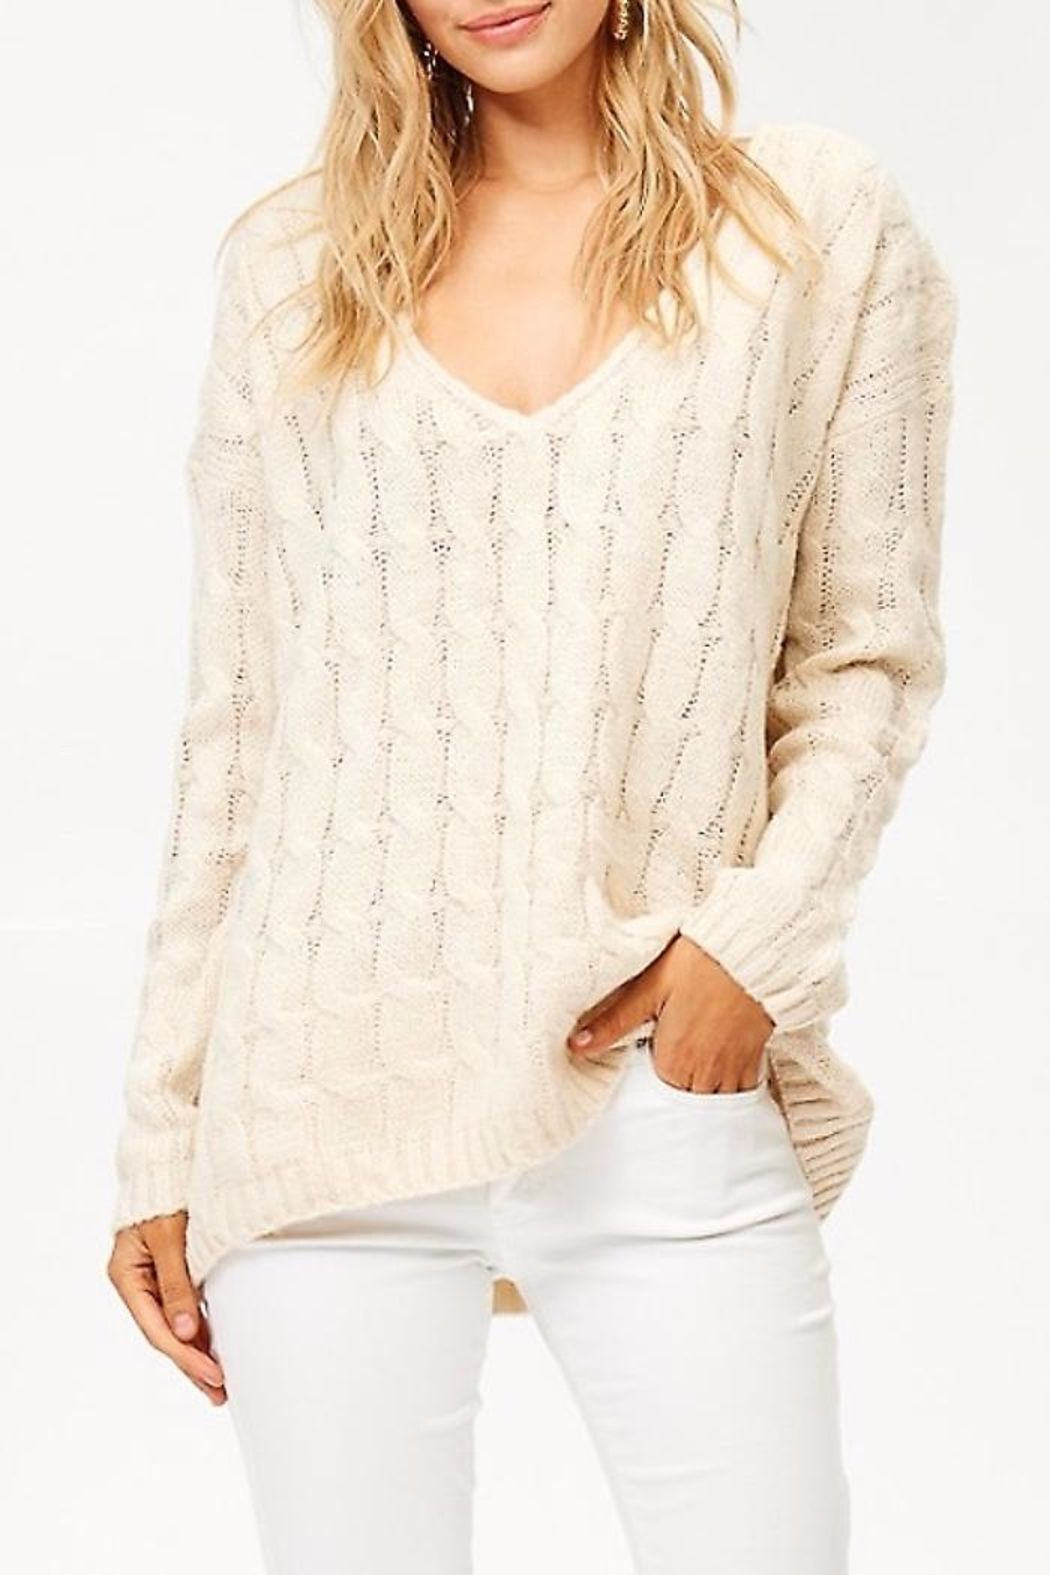 v Neck Knit Sweater in 2020 | Pullover, Fuzzy pullover, Sweaters